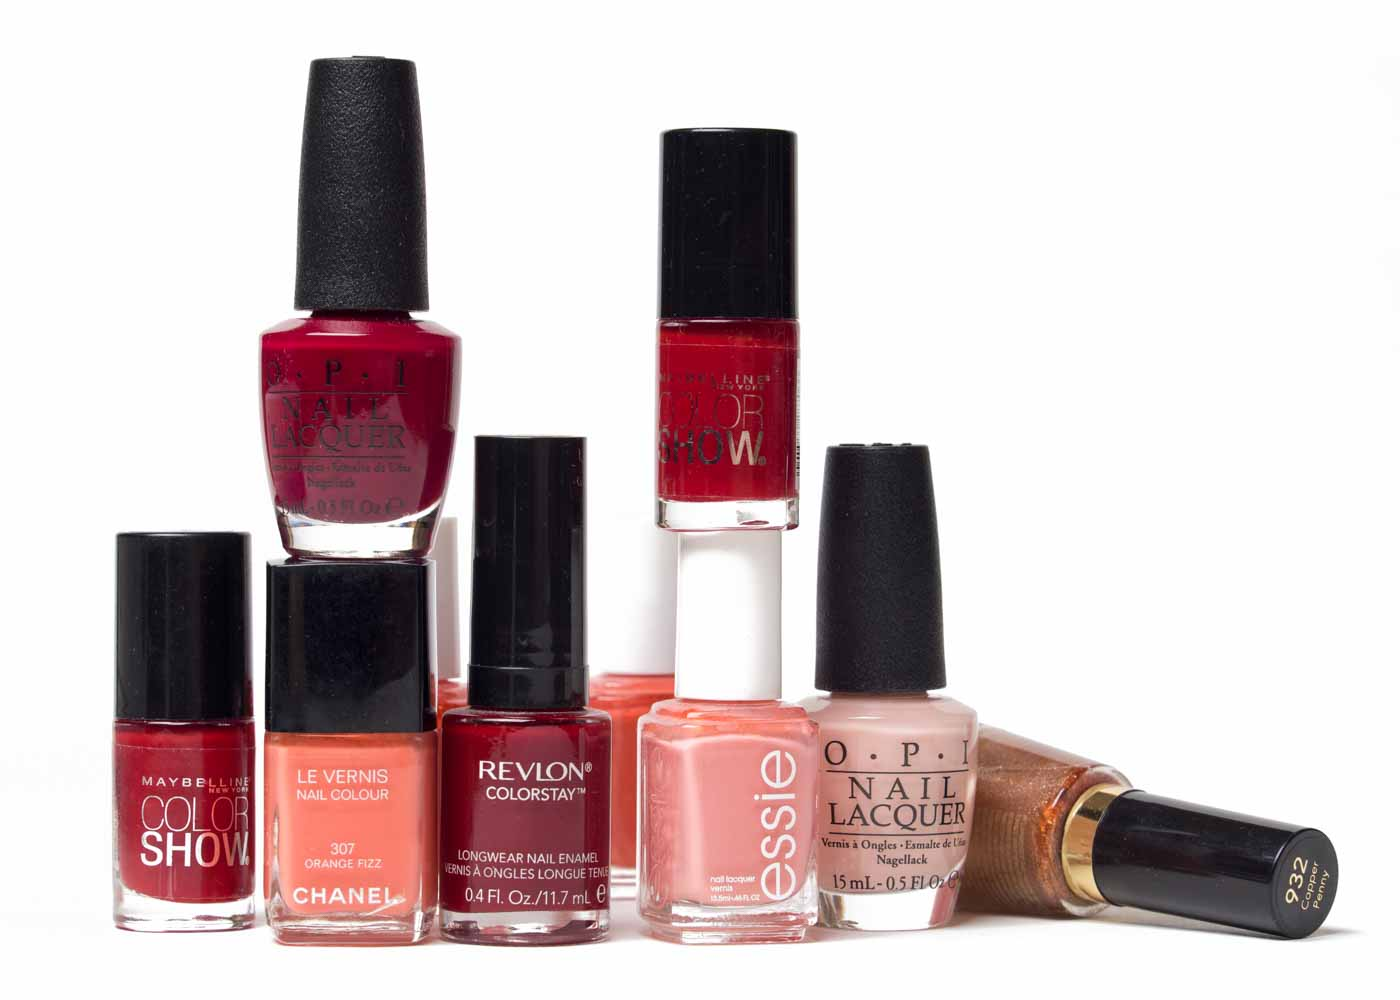 Giving a mani-pedi gift certificate? Consider accompanying it with a bottle of polish.